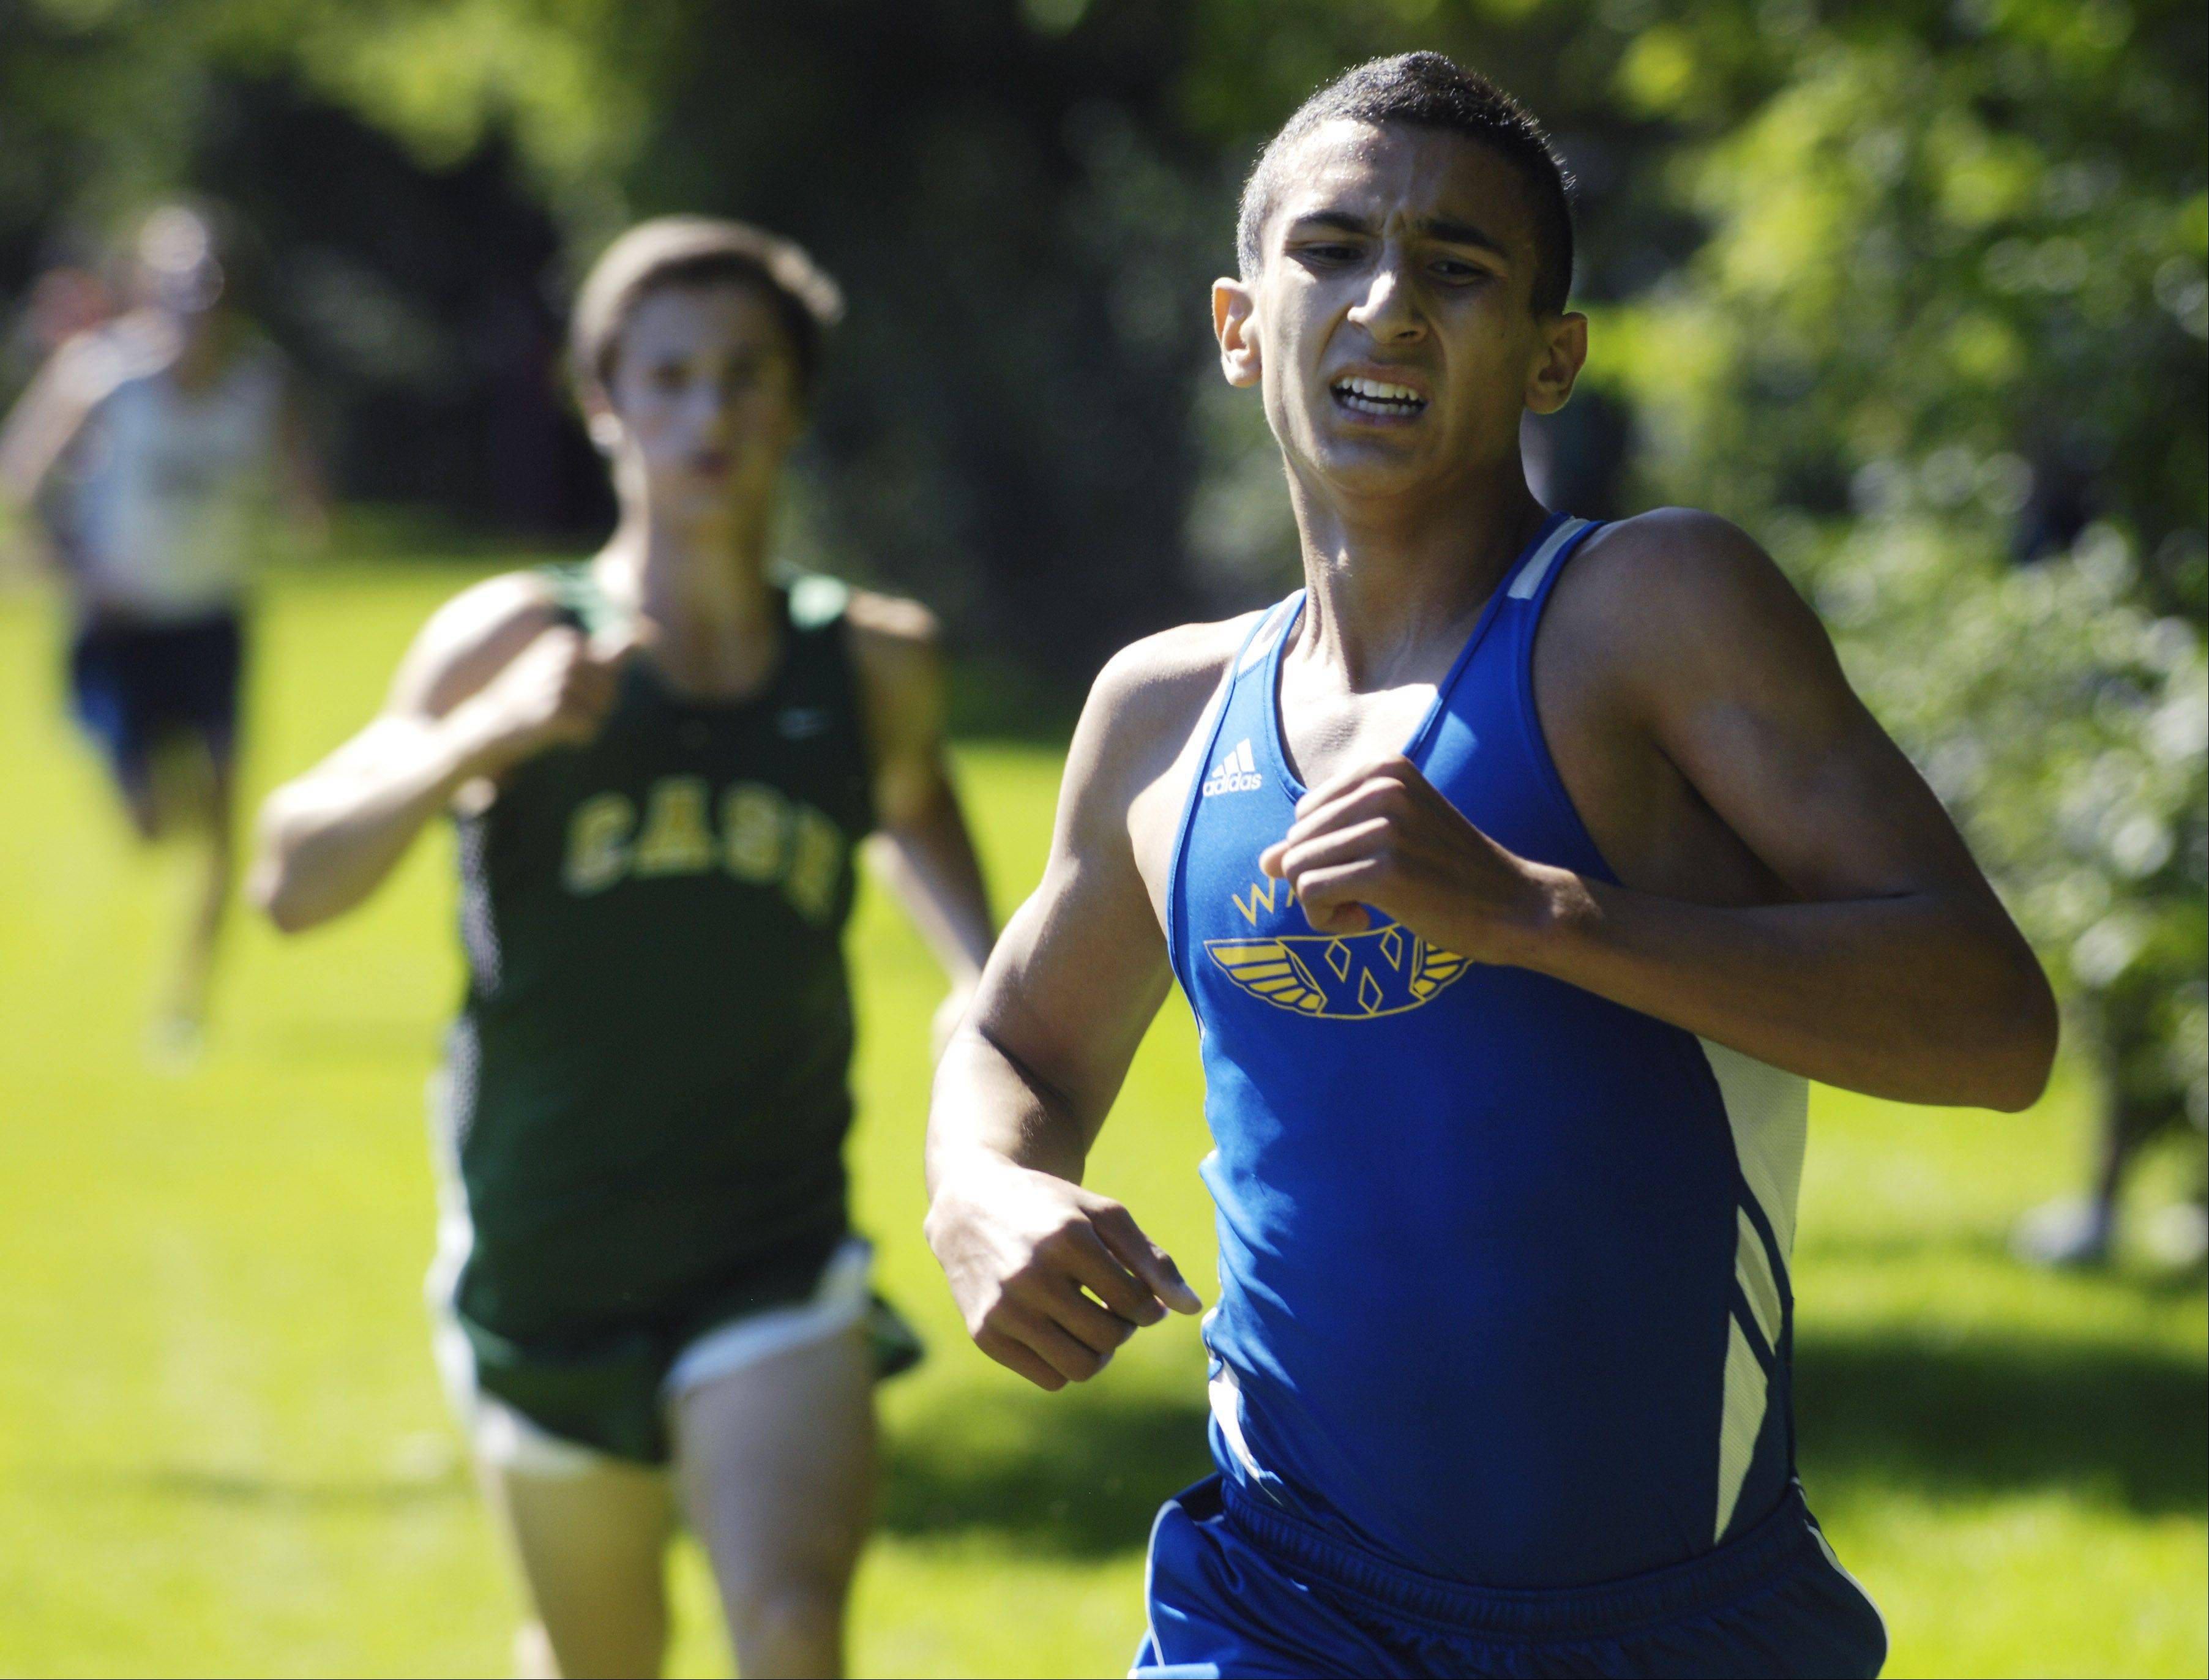 Warren's Martin Martinez wins the boys' race during the Warren cross country invite in Gurnee on Saturday. His effort was key to the Blue Devils winning the team competition.